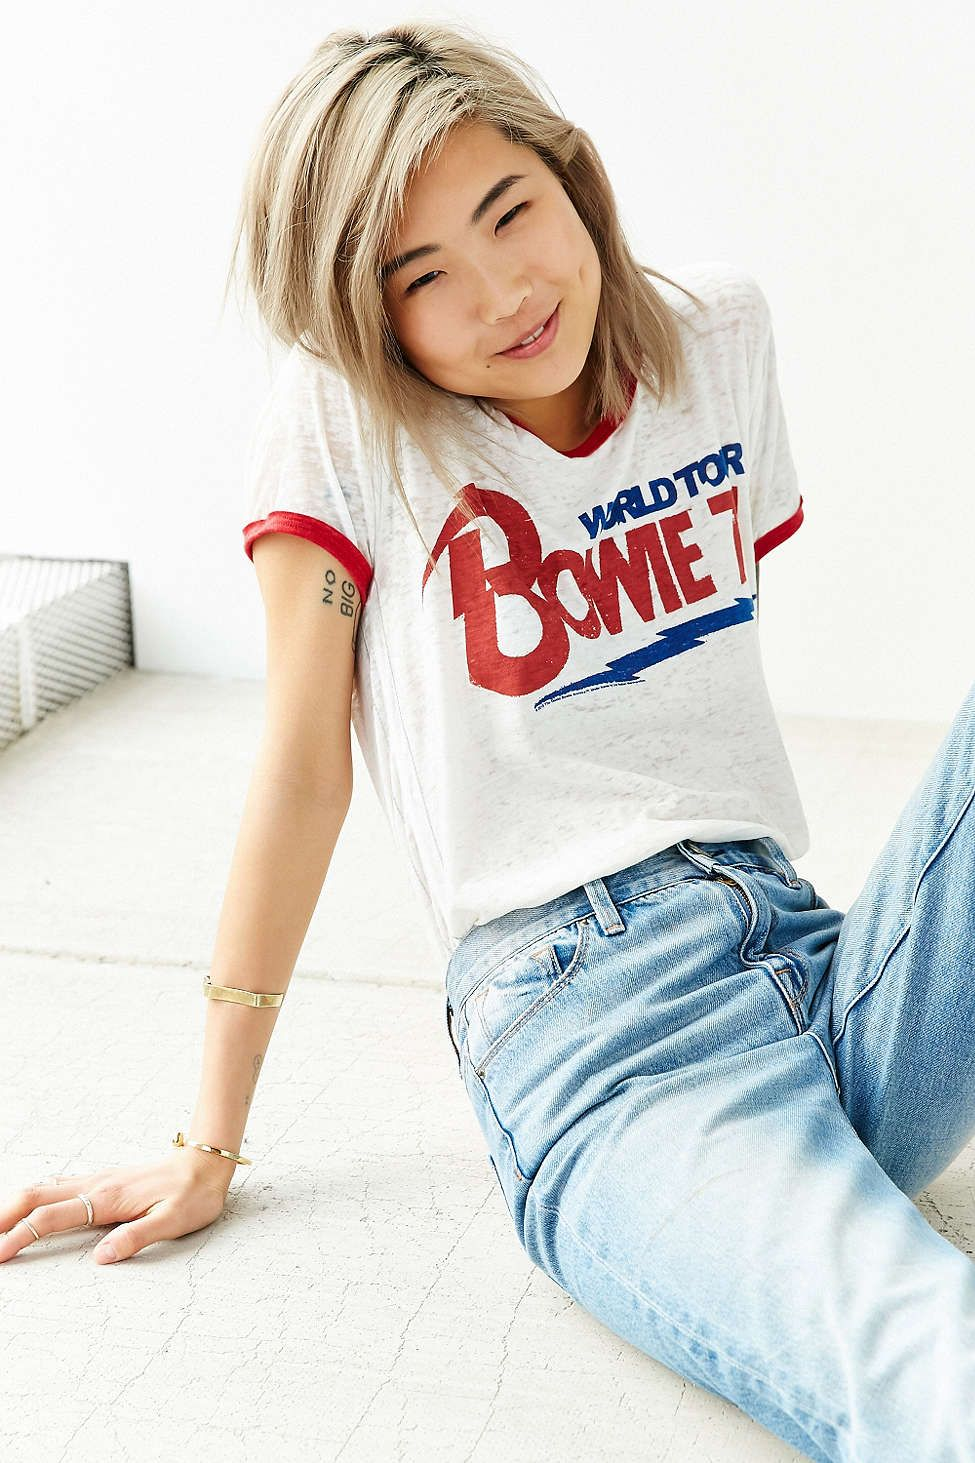 67393c9223 TRUNK LTD David Bowie Banded Tee - Urban Outfitters